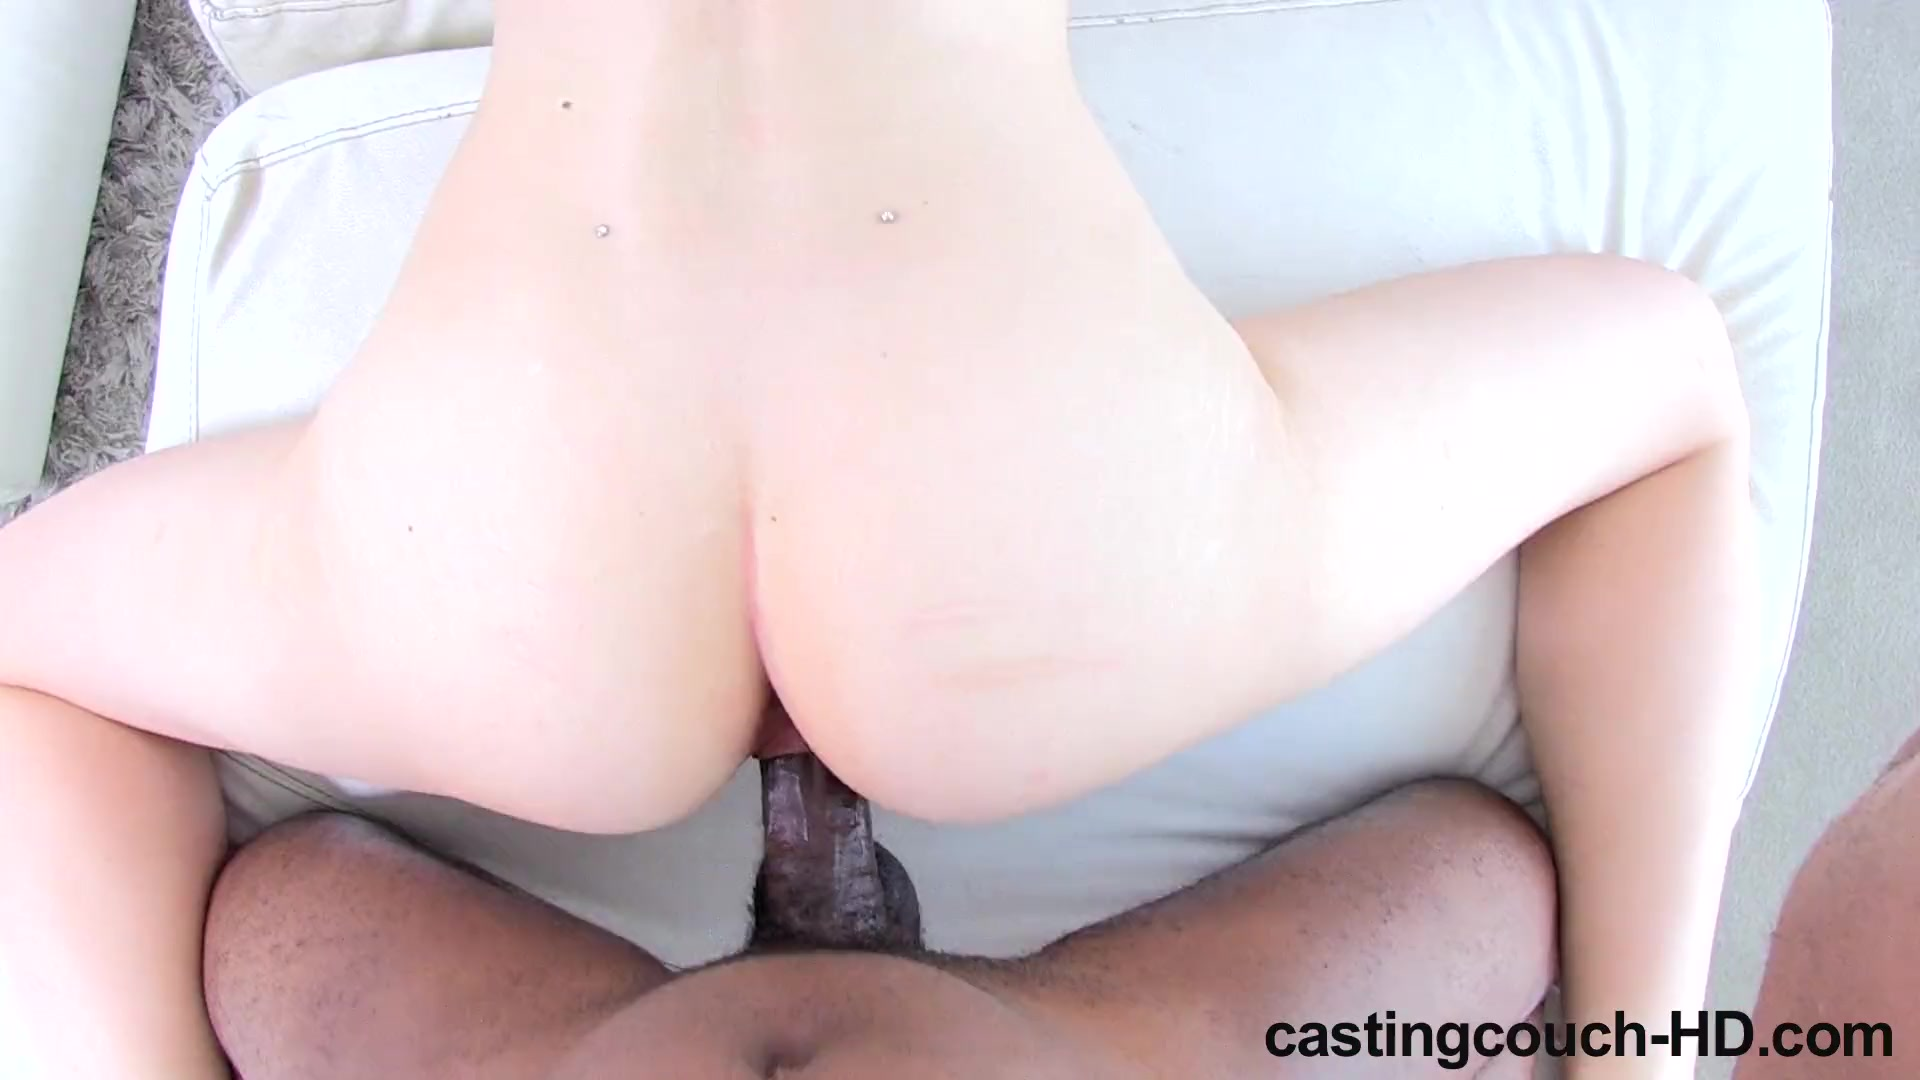 castingcouch hd melody